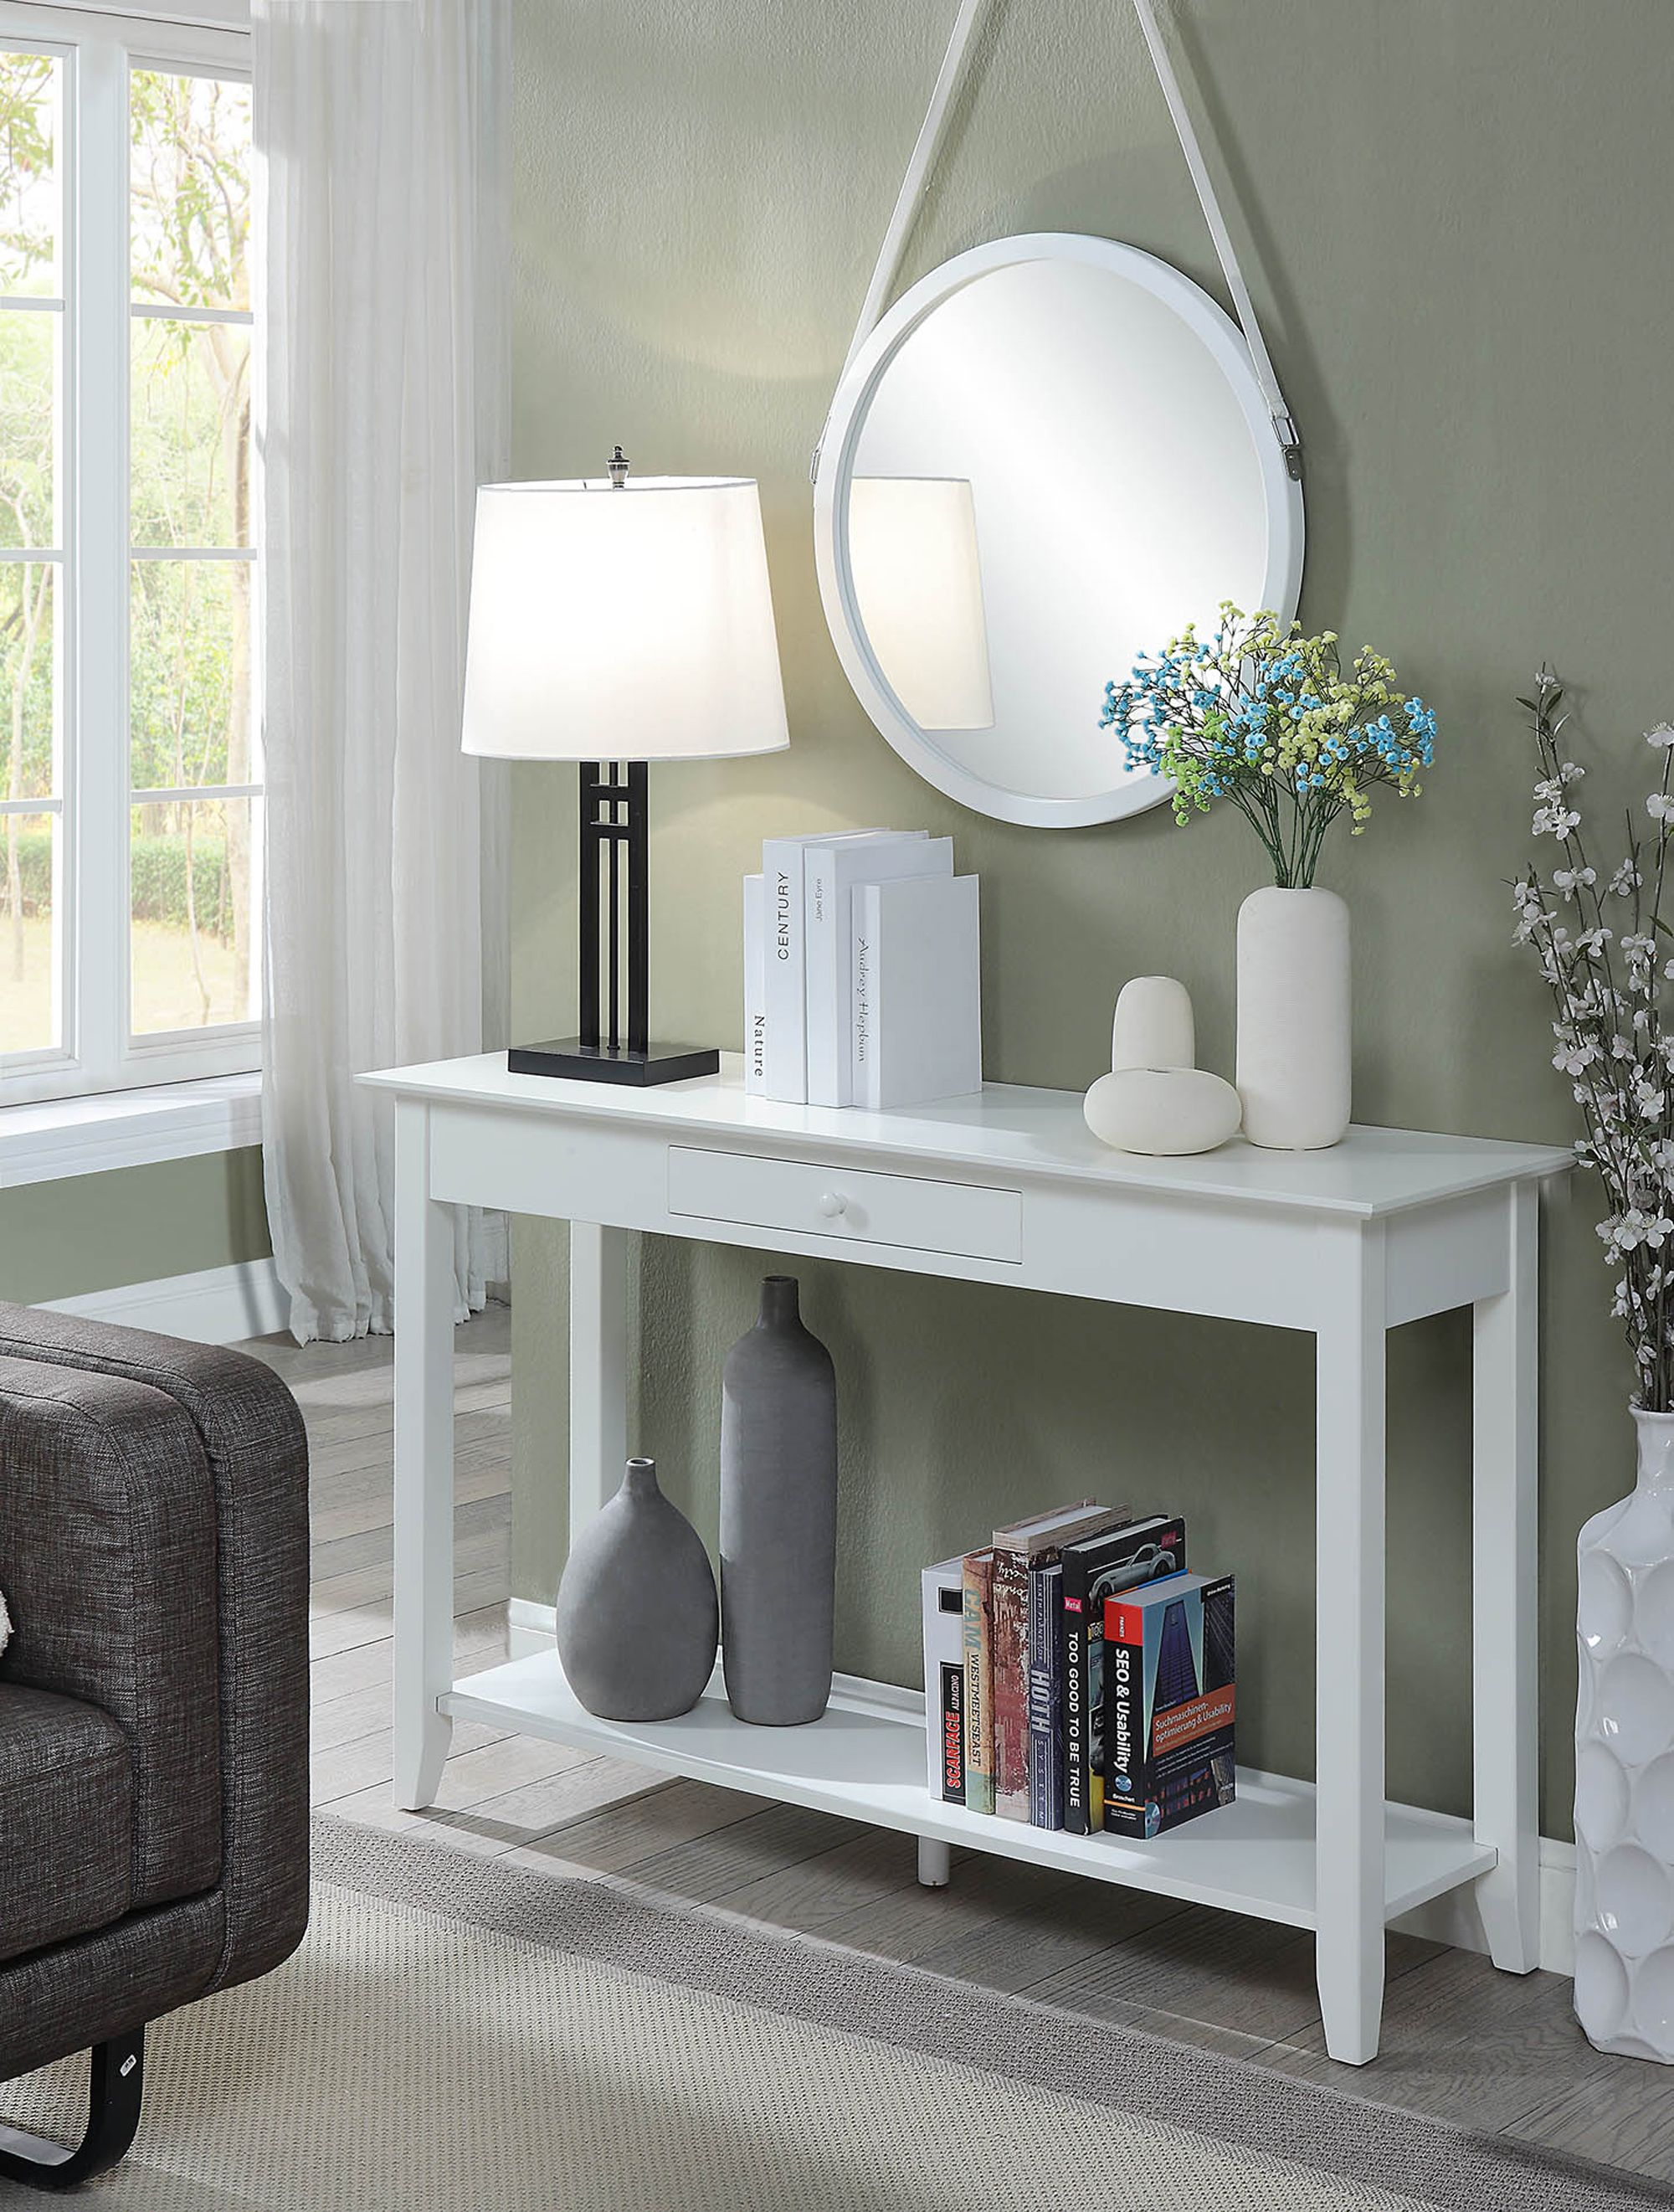 Pin By Goedekers Com On Decorar Entrada Casa In 2020 White Console Table White Furniture Living Room Console Table Decorating